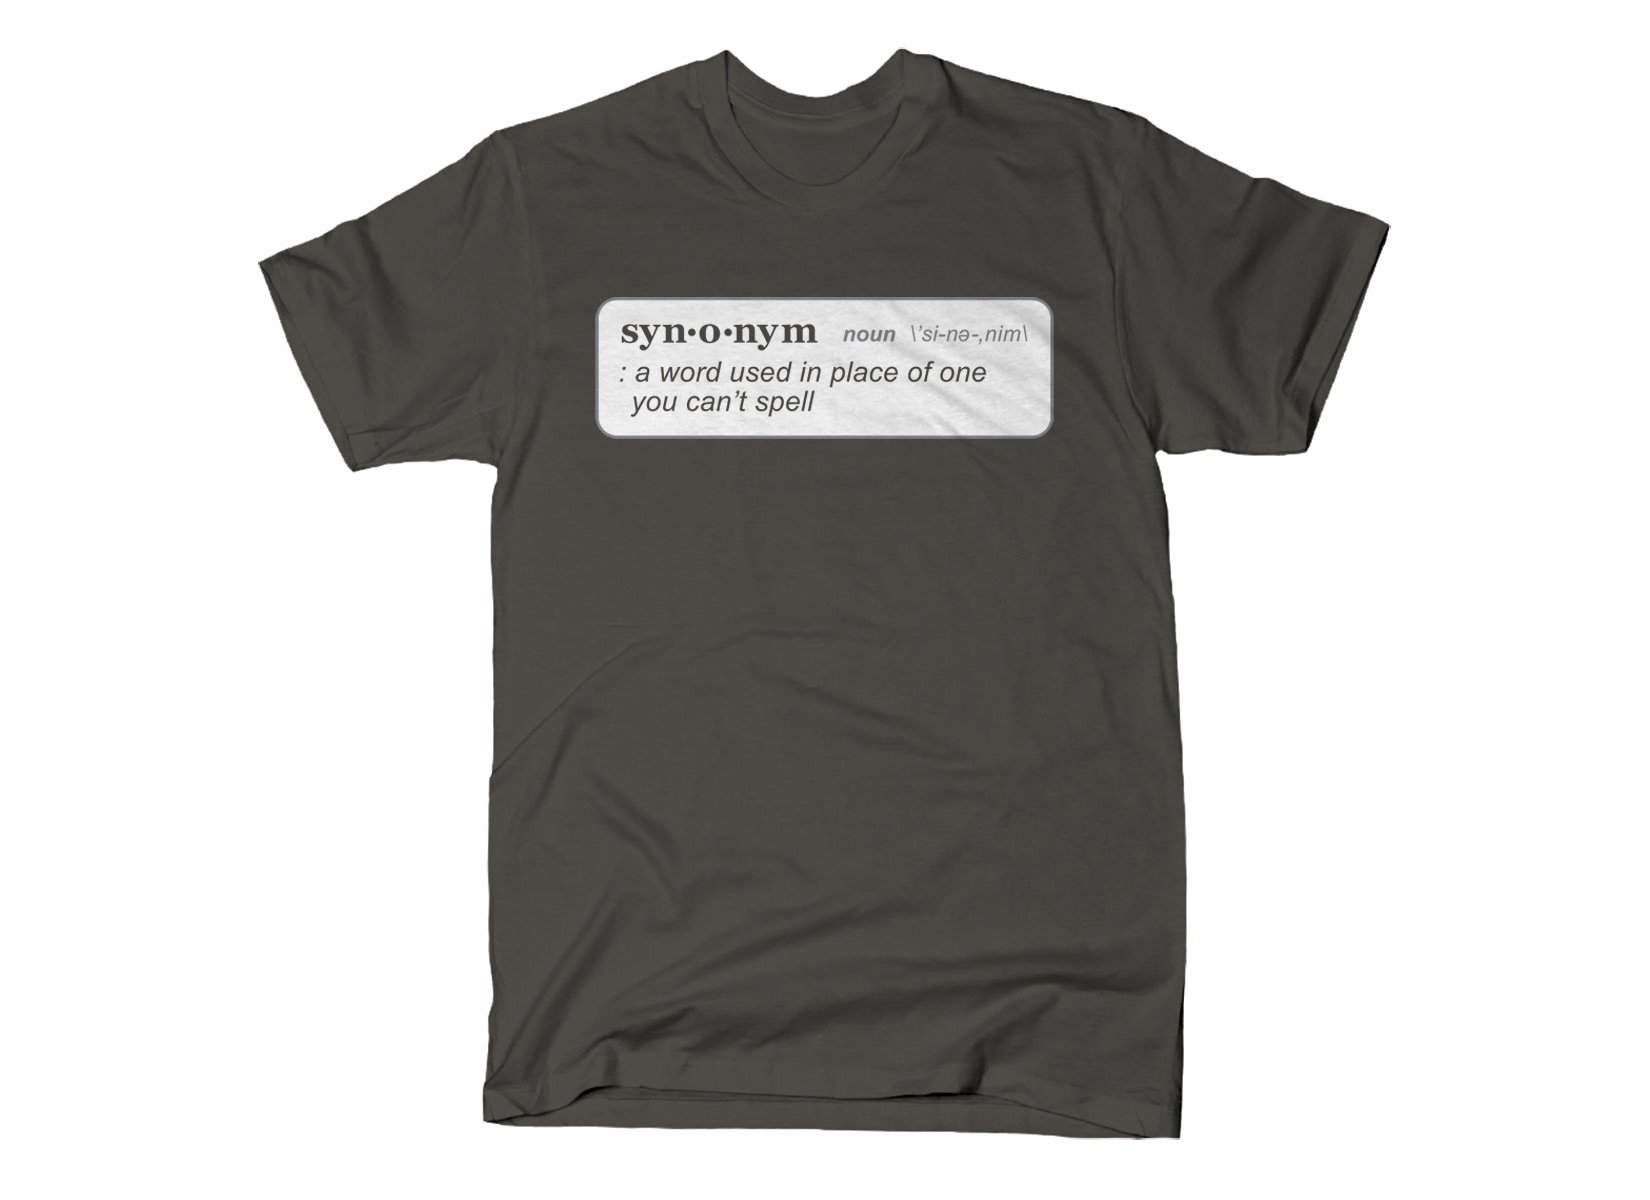 Synonym Definition on Mens T-Shirt